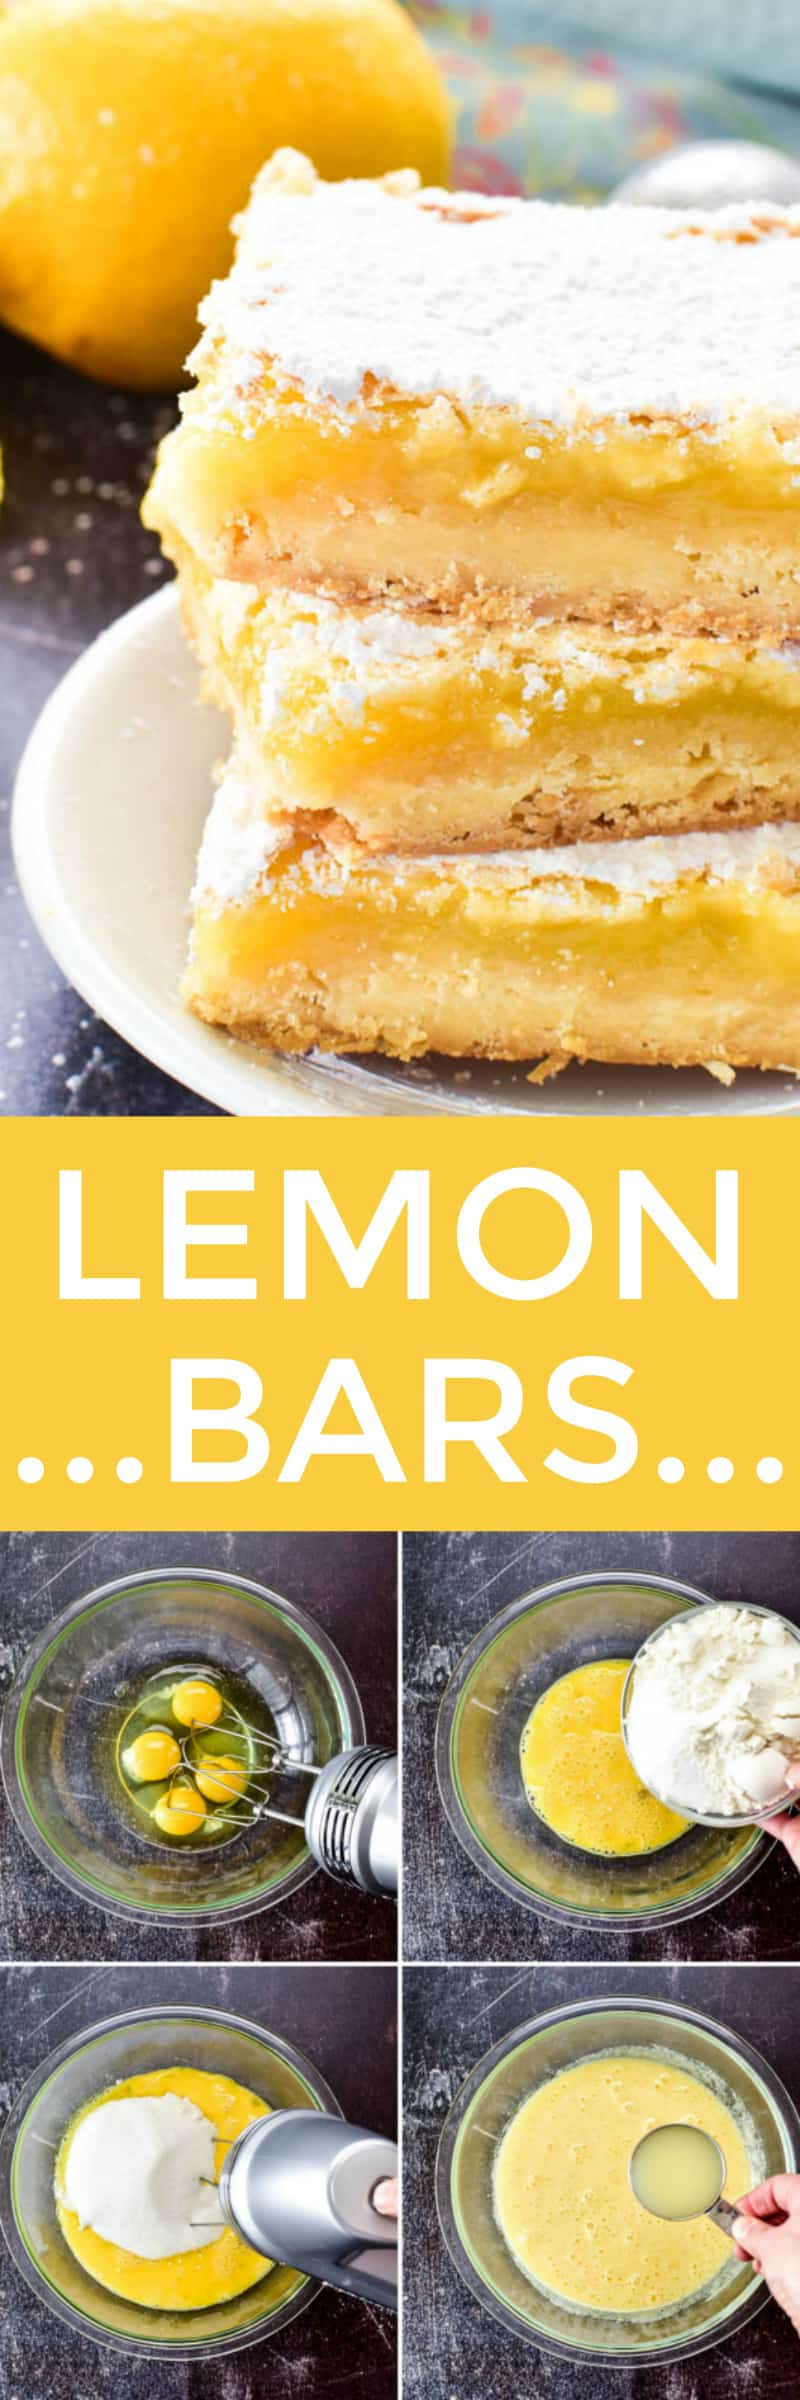 Lemon Bars collage image with process shots and bars cut on plate